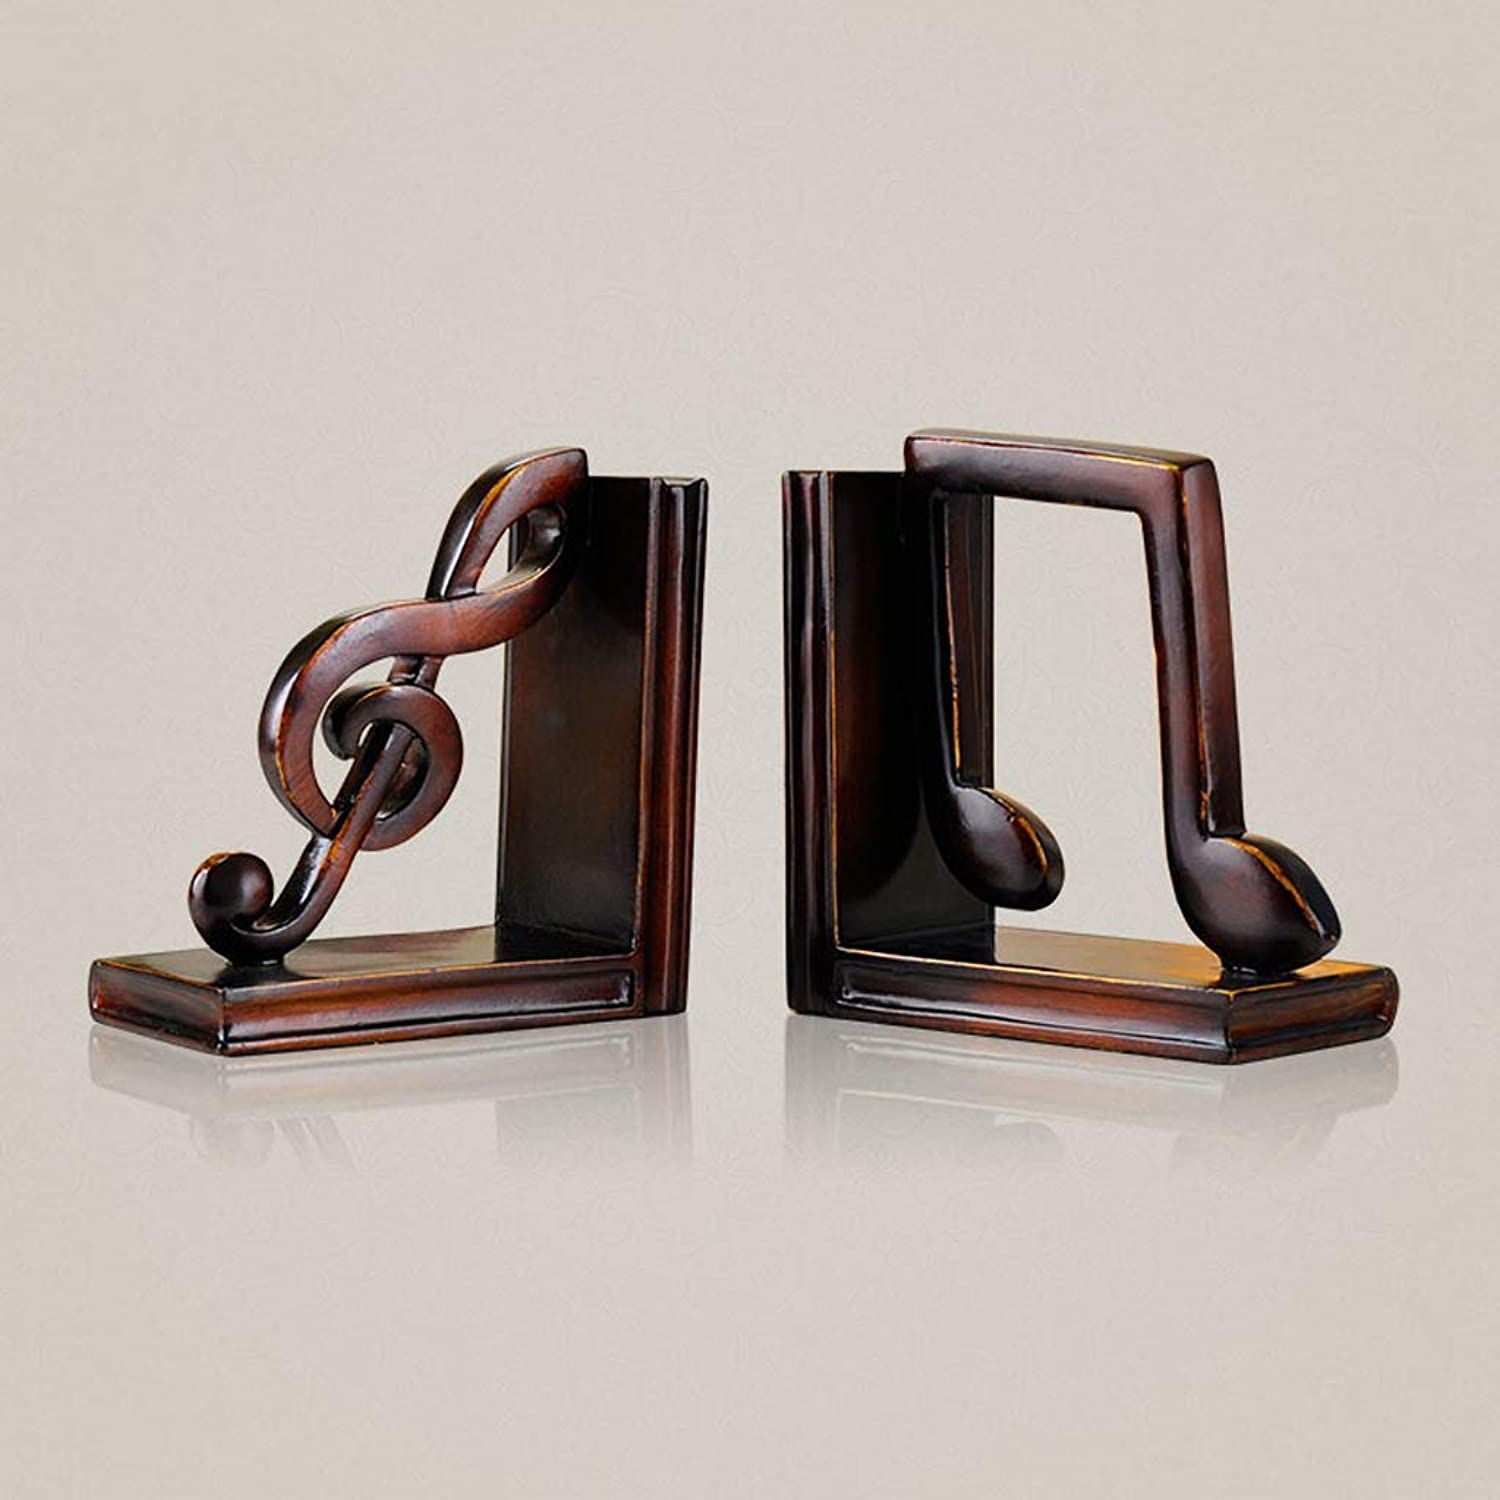 TLMYDD American Musical Book Block Decoration Creative Study Book Stand Clip Book Decoration Book Resin Craft Decoration 14.3x7.5x15.5cm Bookcase